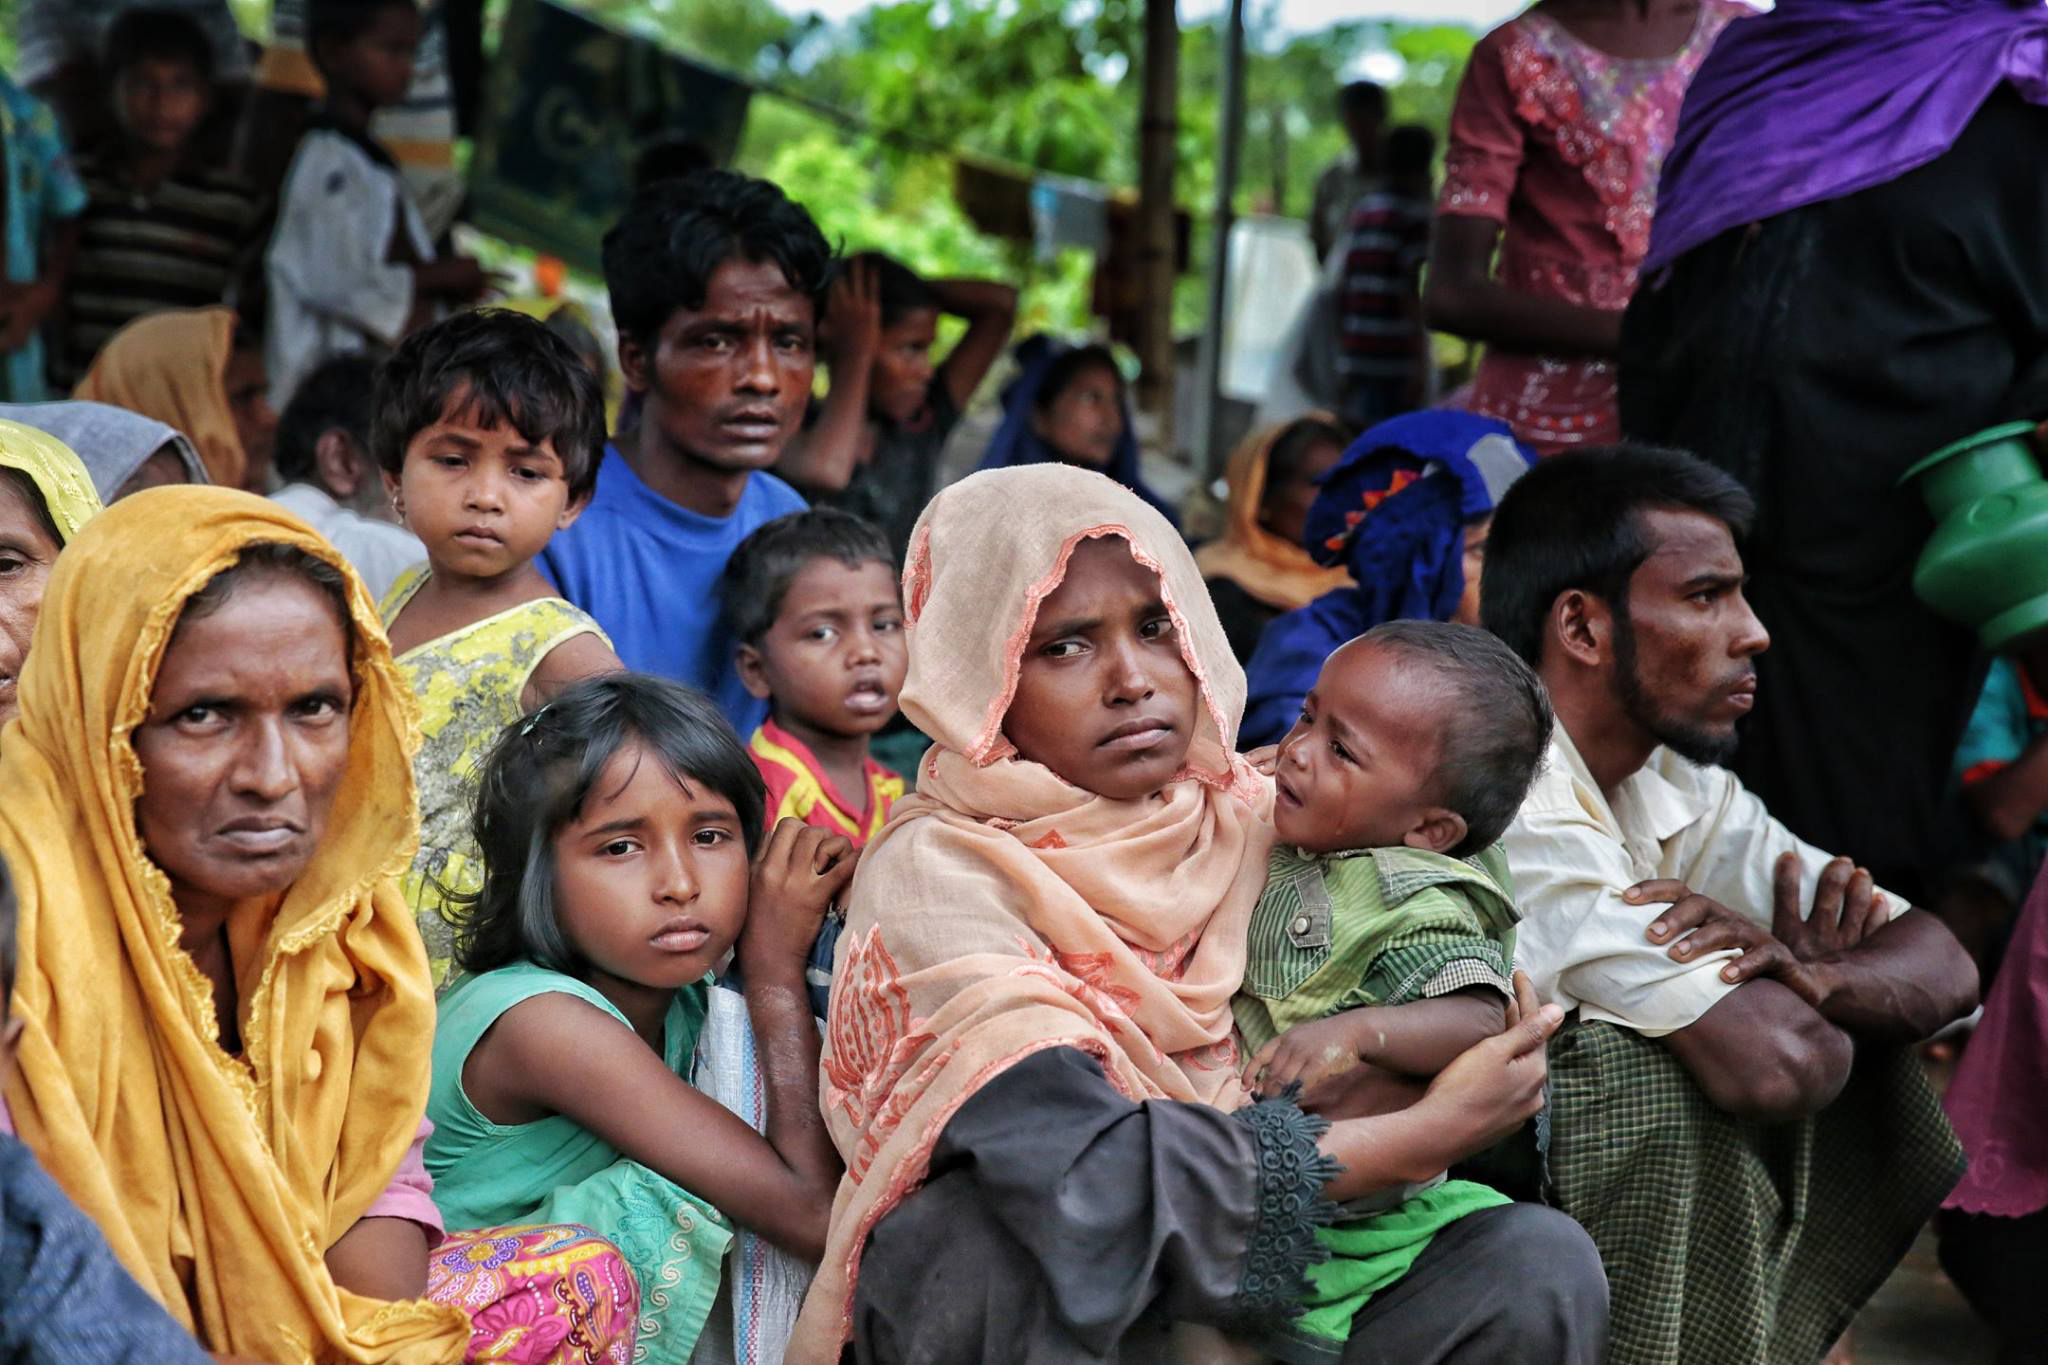 Myanmar Human Rights Crisis: HWPL Issues Statement